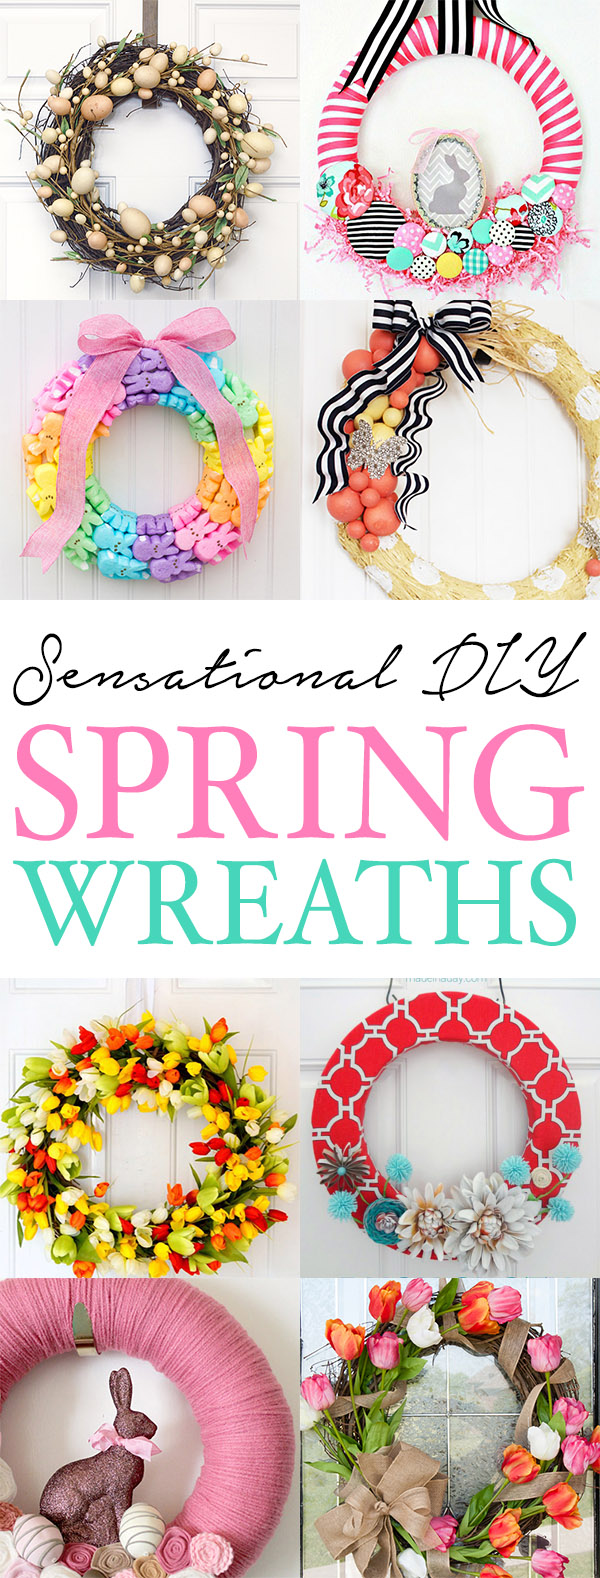 http://thecottagemarket.com/wp-content/uploads/2016/03/DIYSpringWreath-TOWER-001.jpg